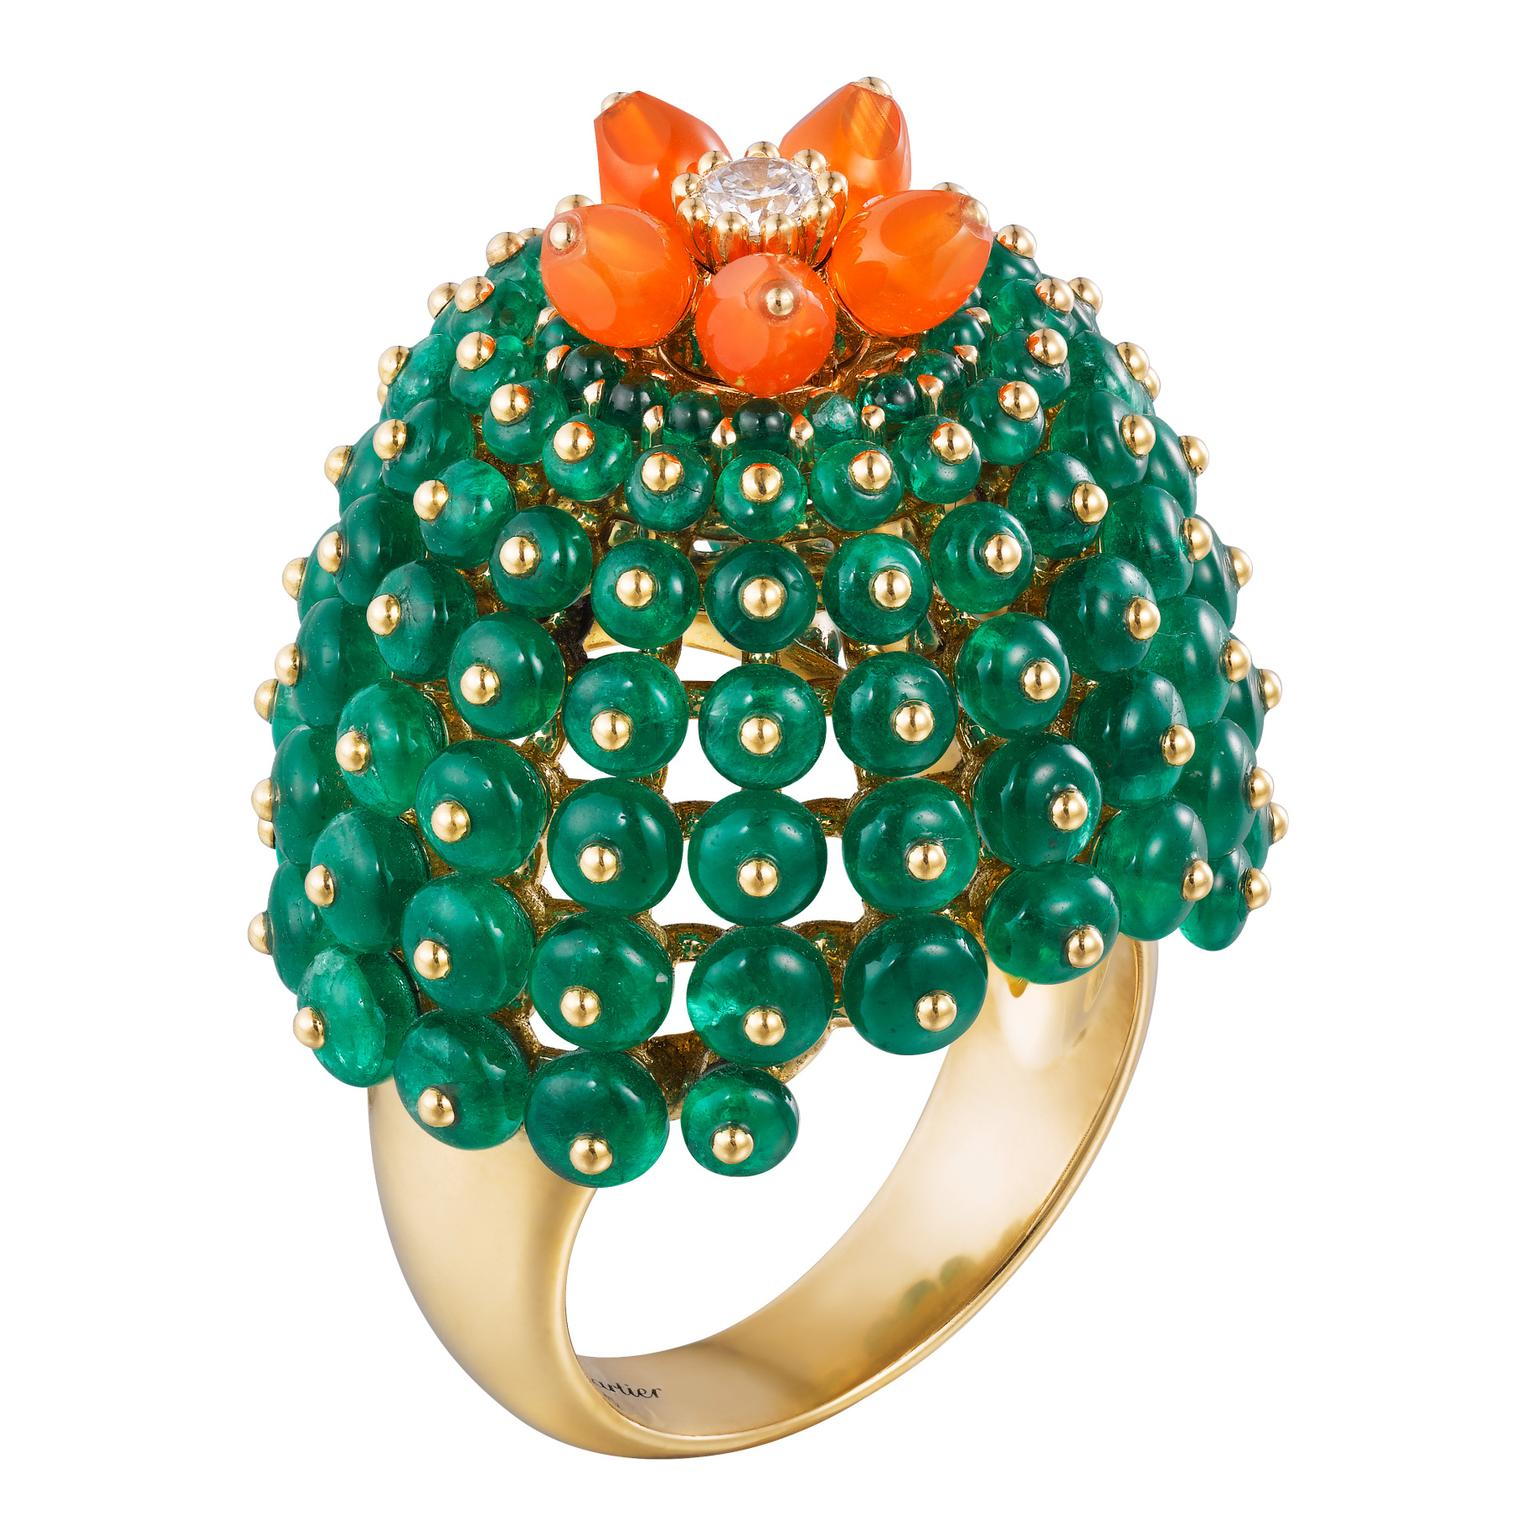 Cactus de Cartier emerald and carnelian ring